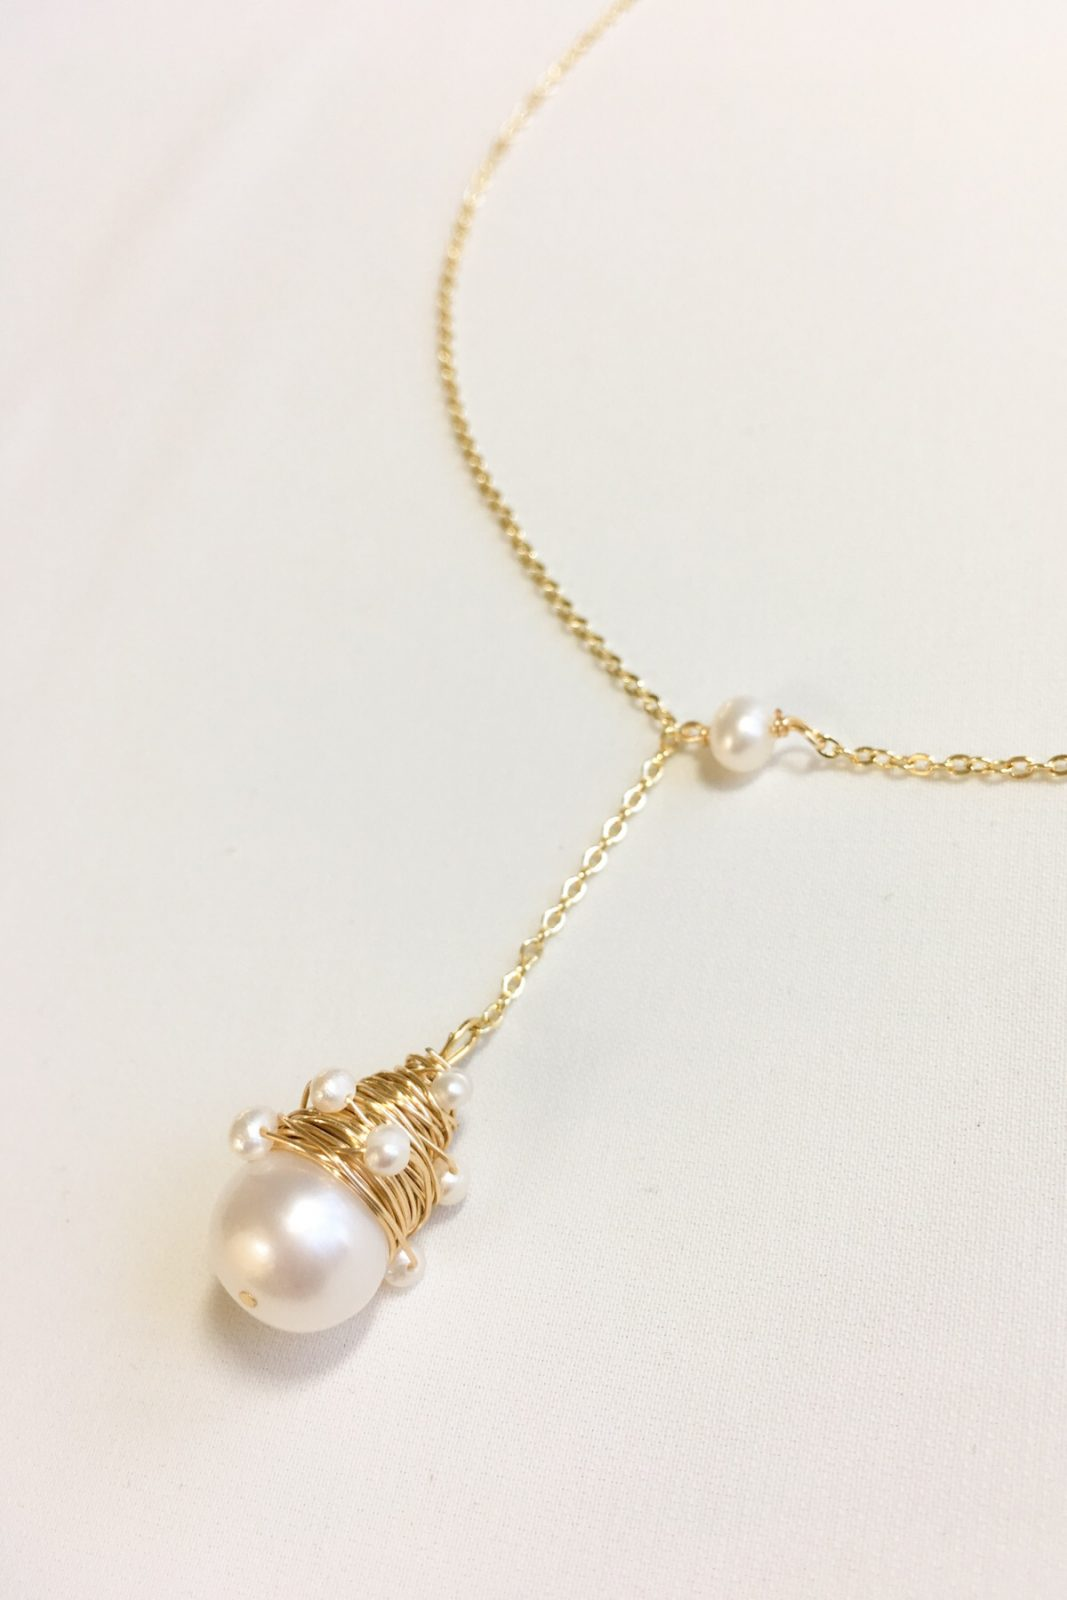 Skye Issey 18k Gold Freshwater Pearl Necklace